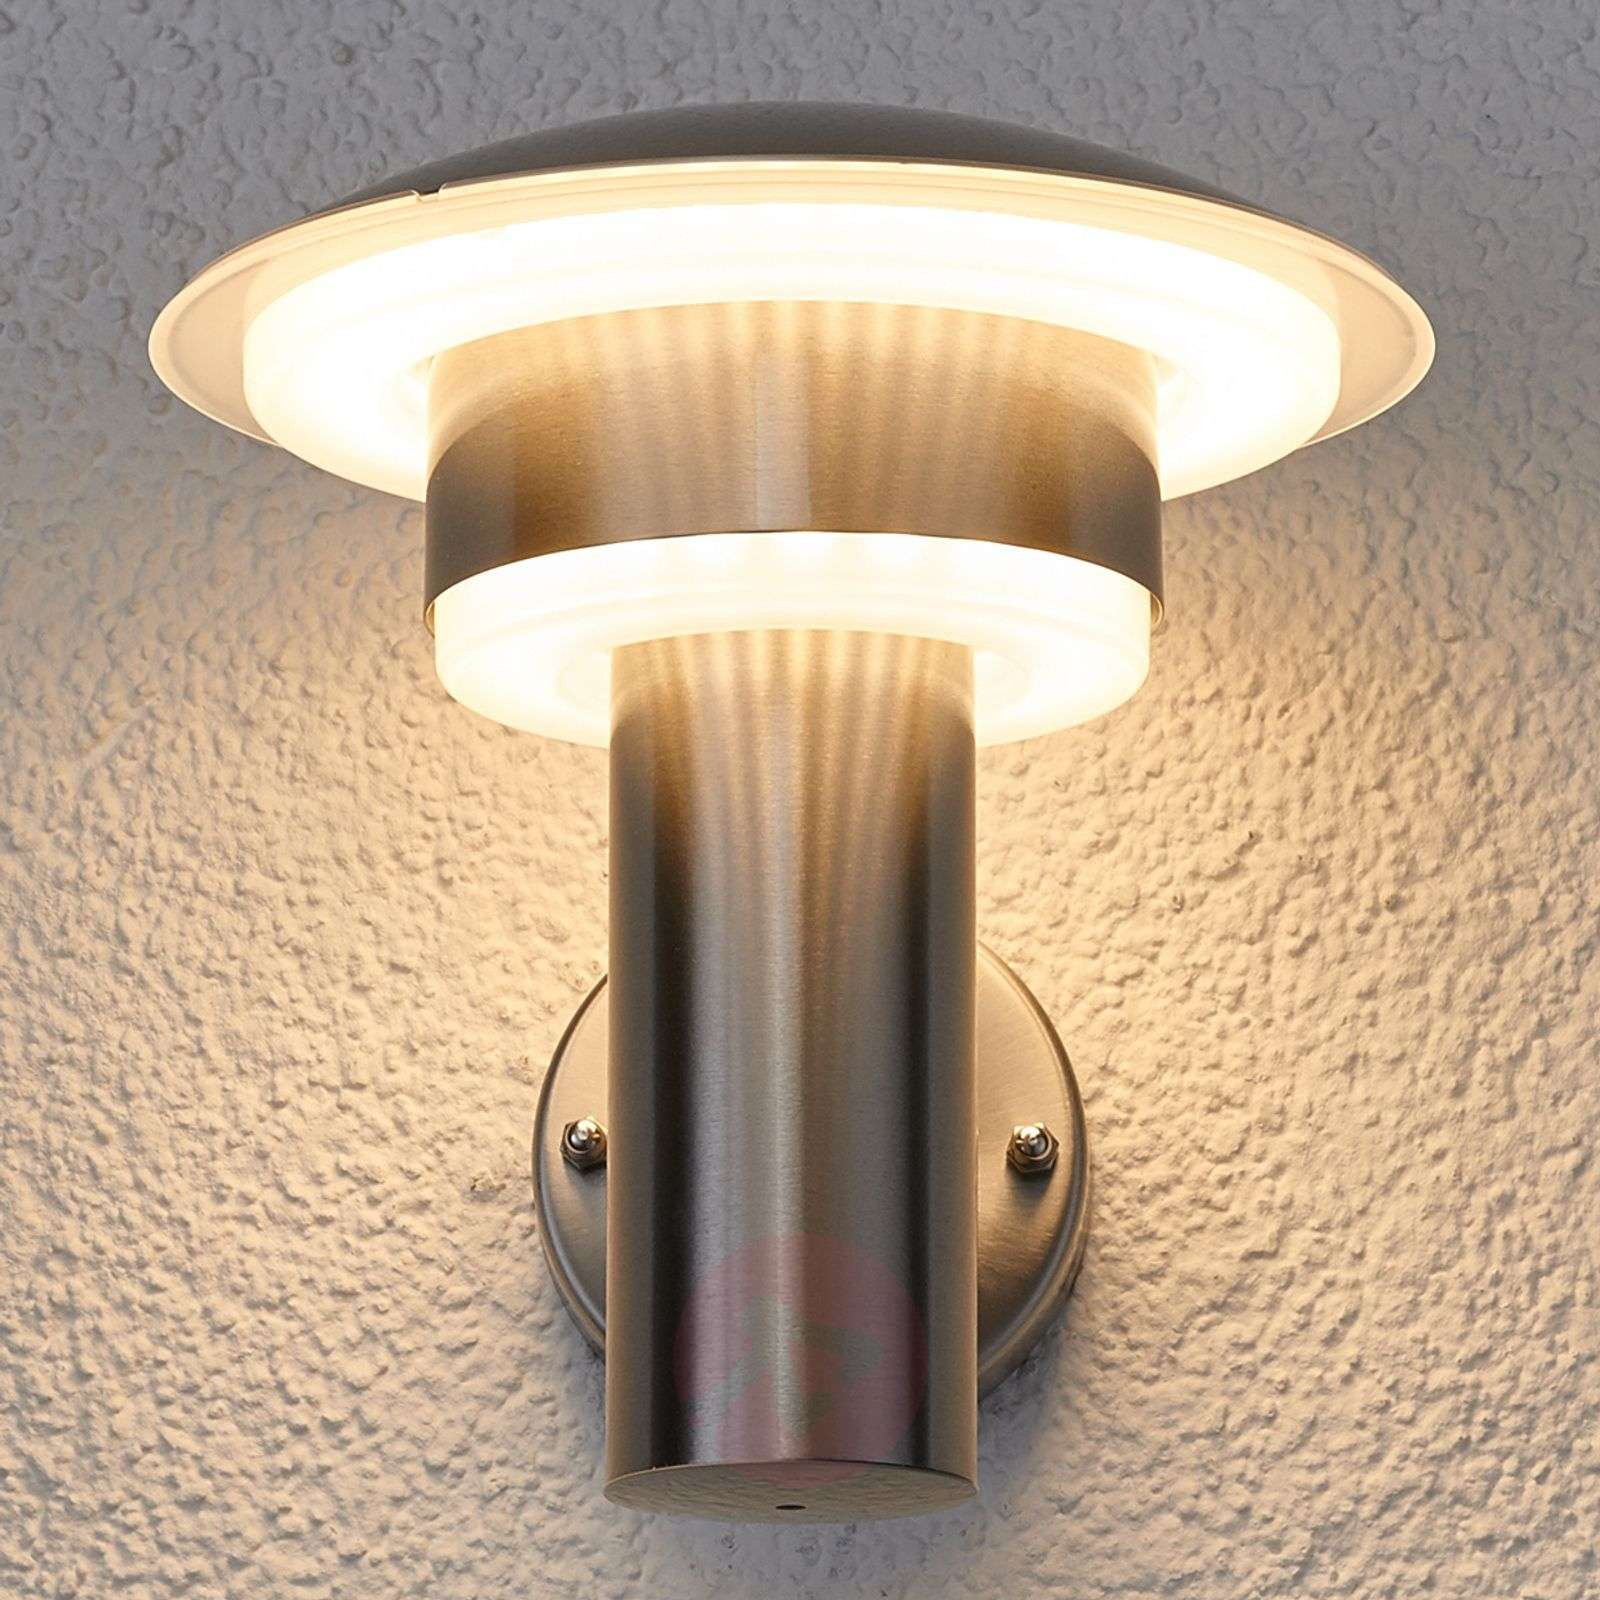 LED stainless steel outdoor wall light Lillie | Lights.ie